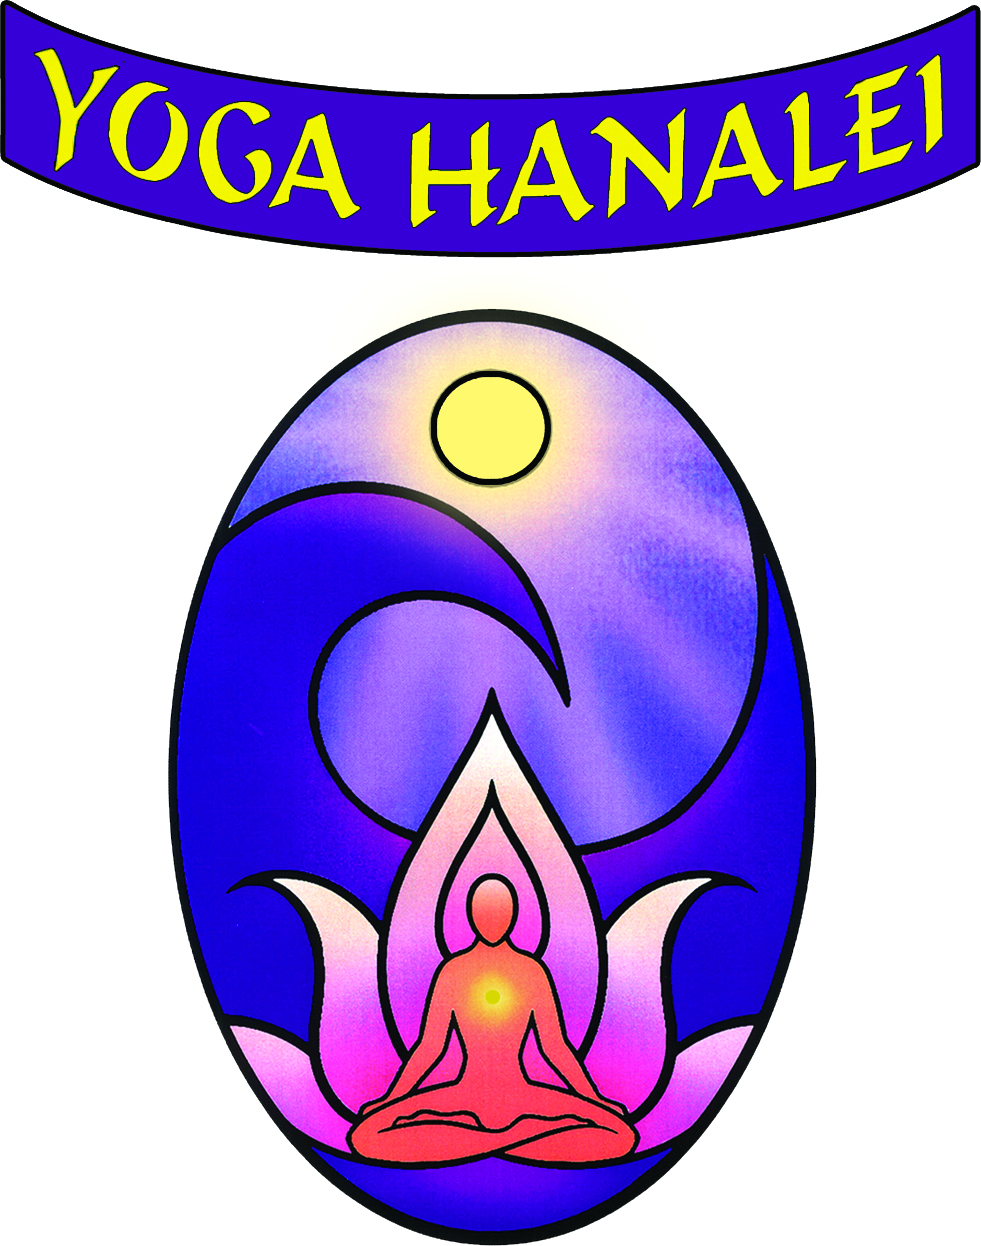 New Yoga Hanalei Logo vector.jpg